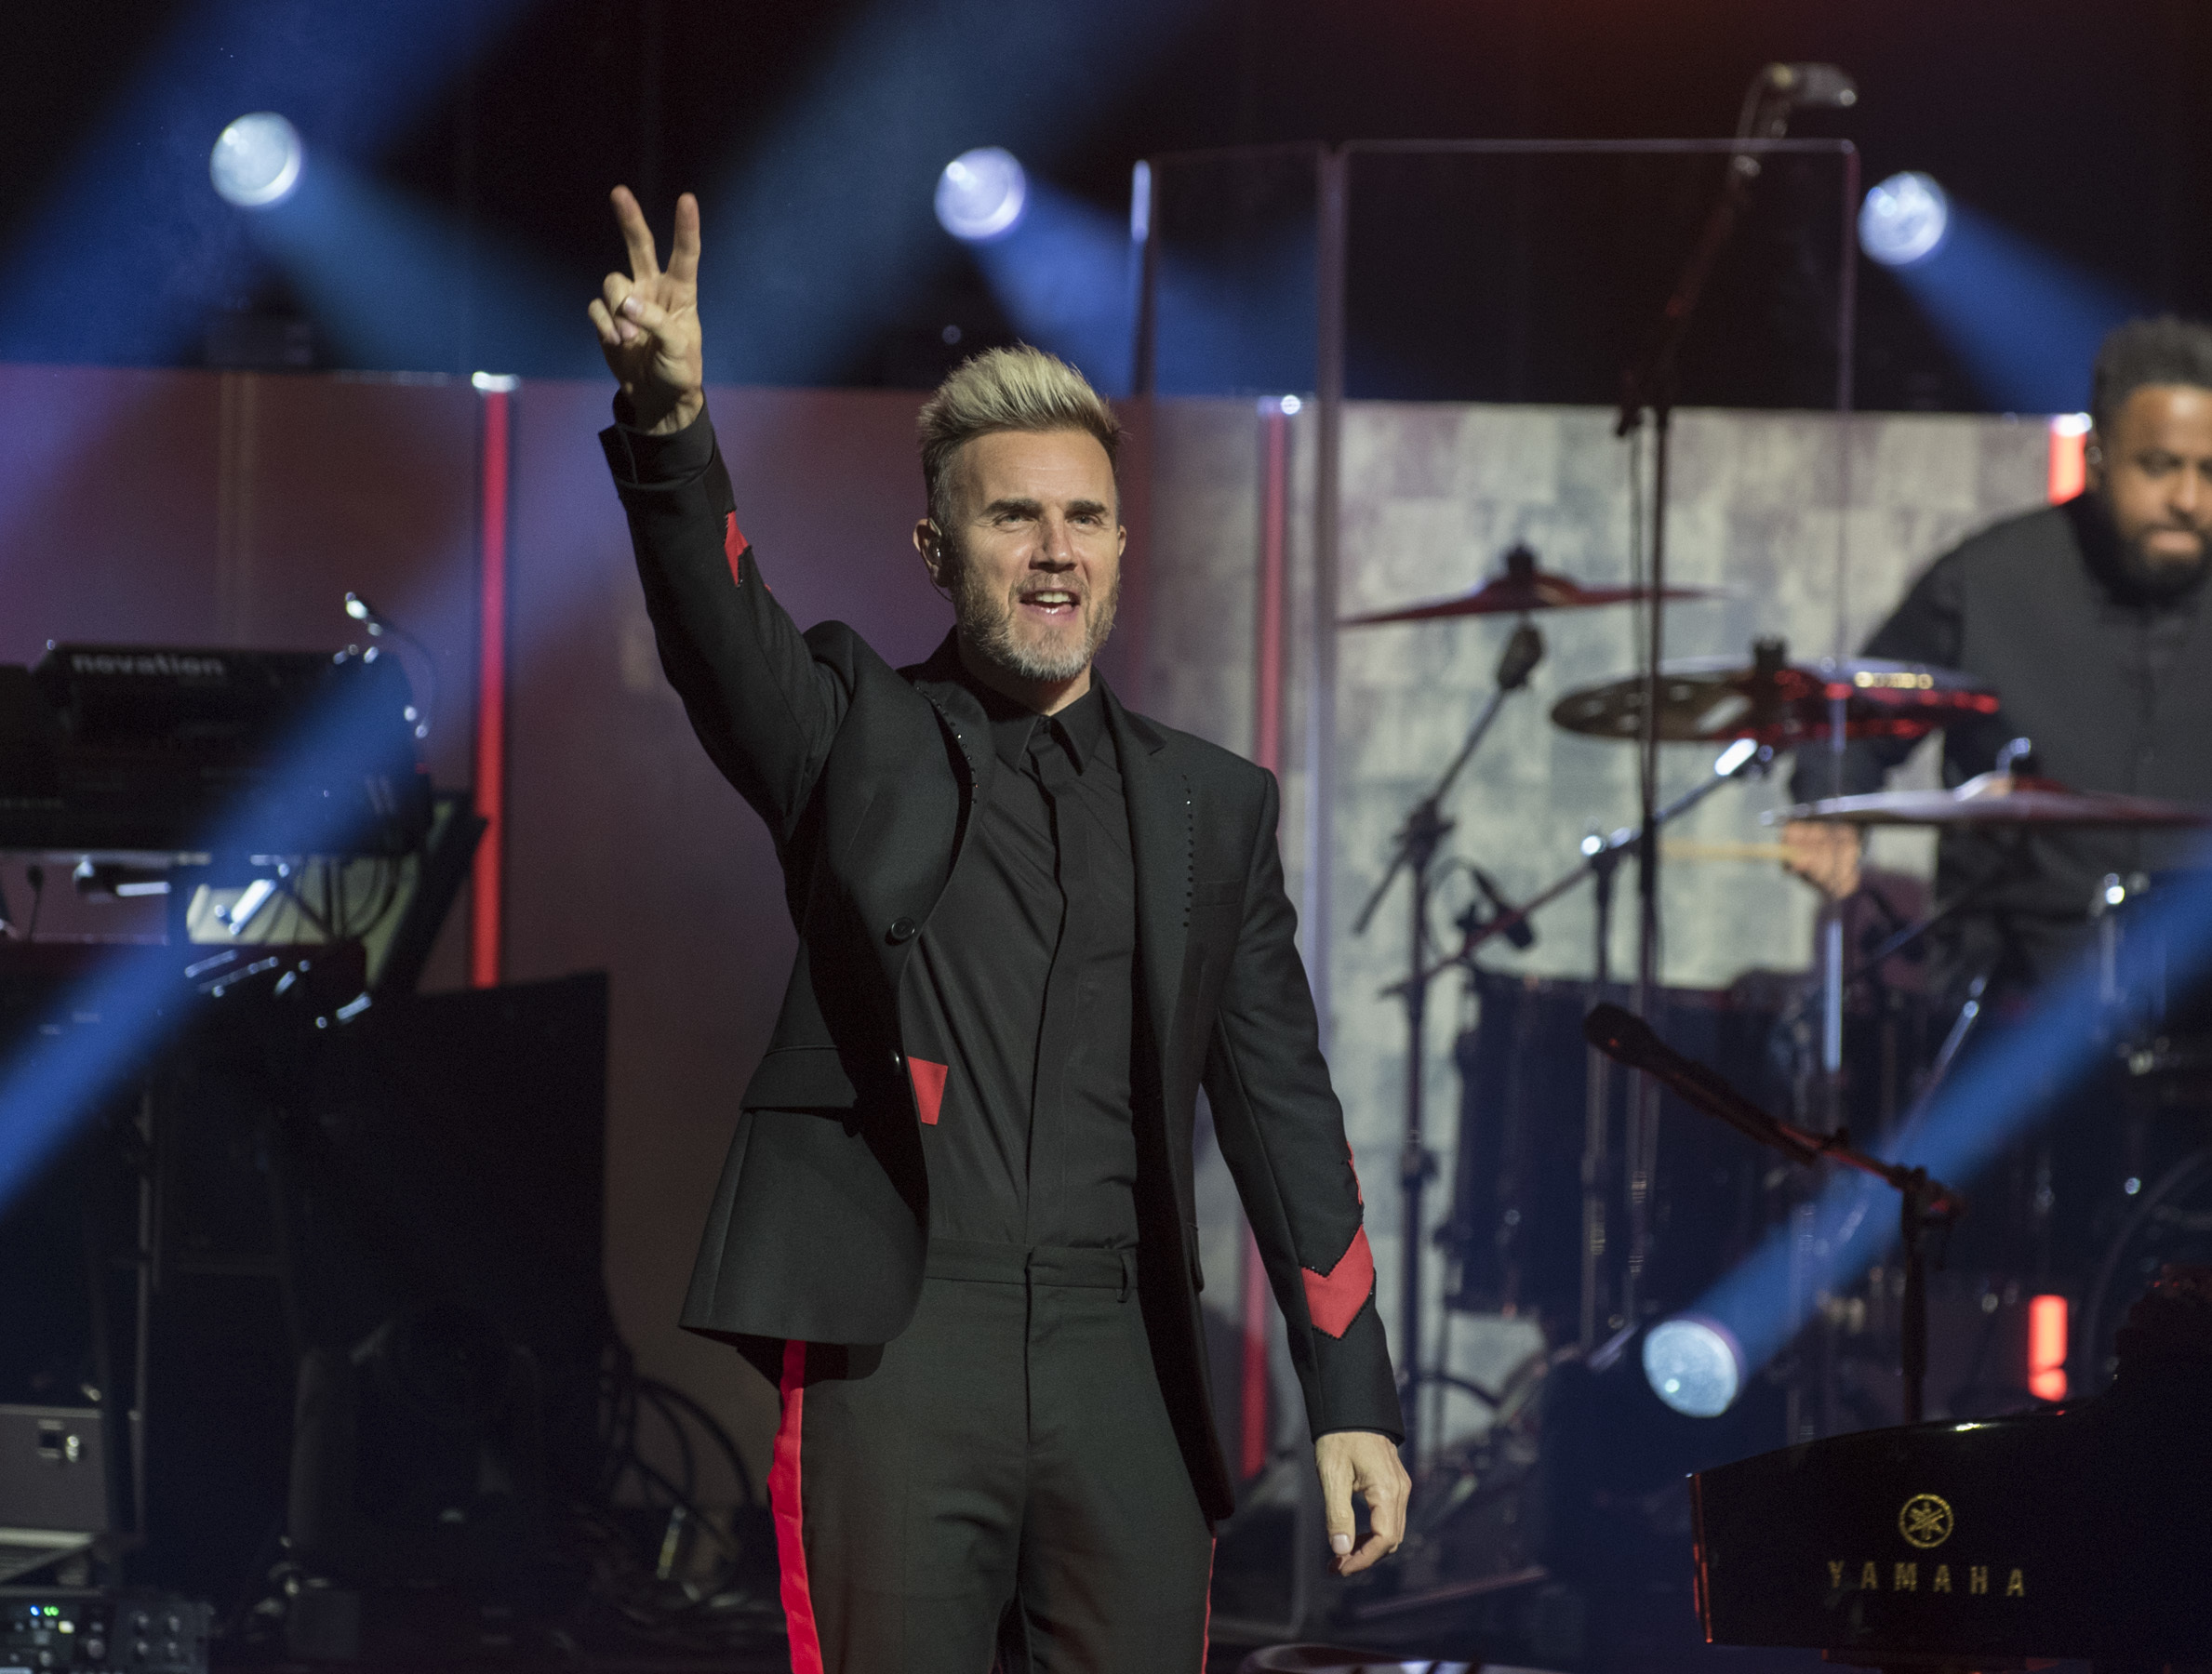 Gary Barlow pictured at Perh Concert Hall on Thursday night.